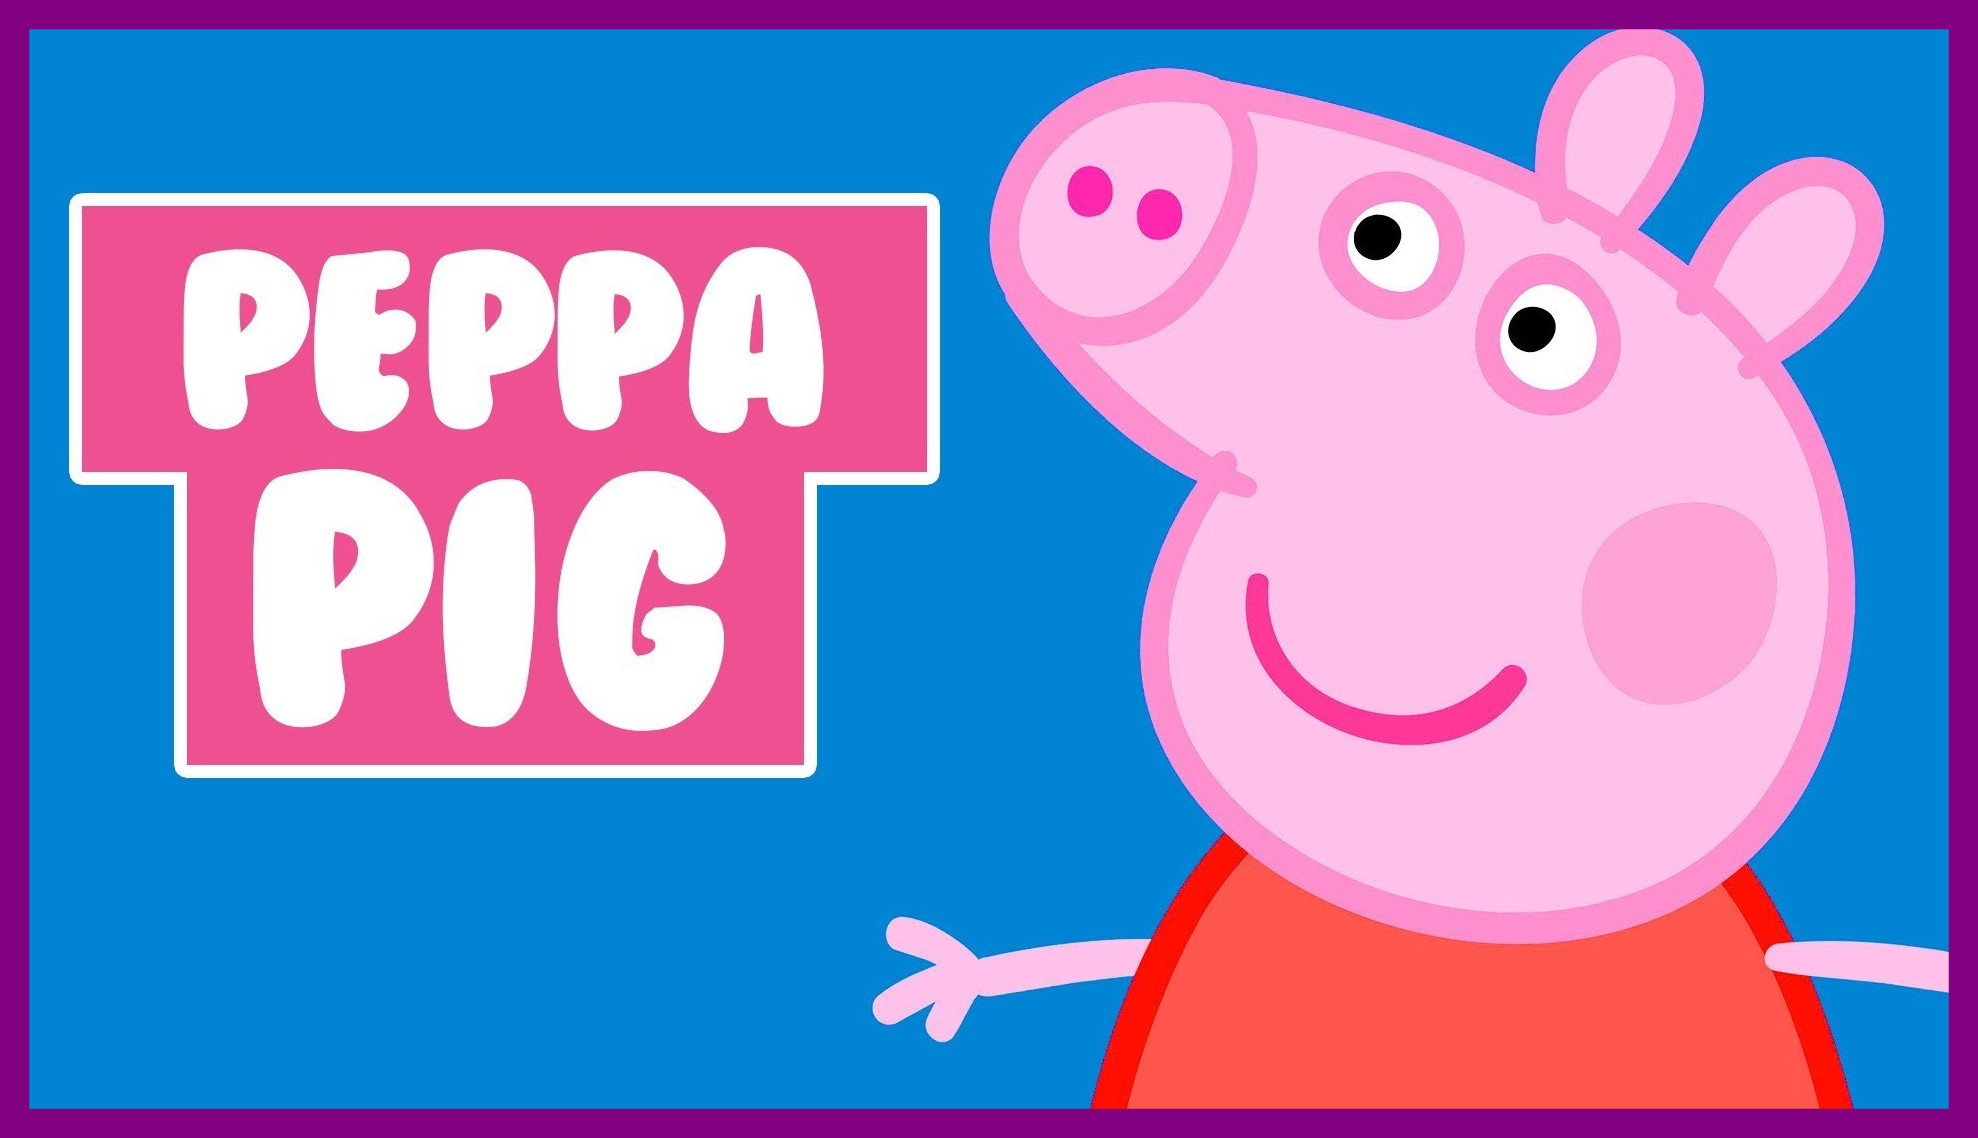 Res: 1978x1138, Funny Pig Funny Peppa Pig Dentist Stunning Pig Cartoon Image Group Of Funny  Peppa Dentist Concept And Trend